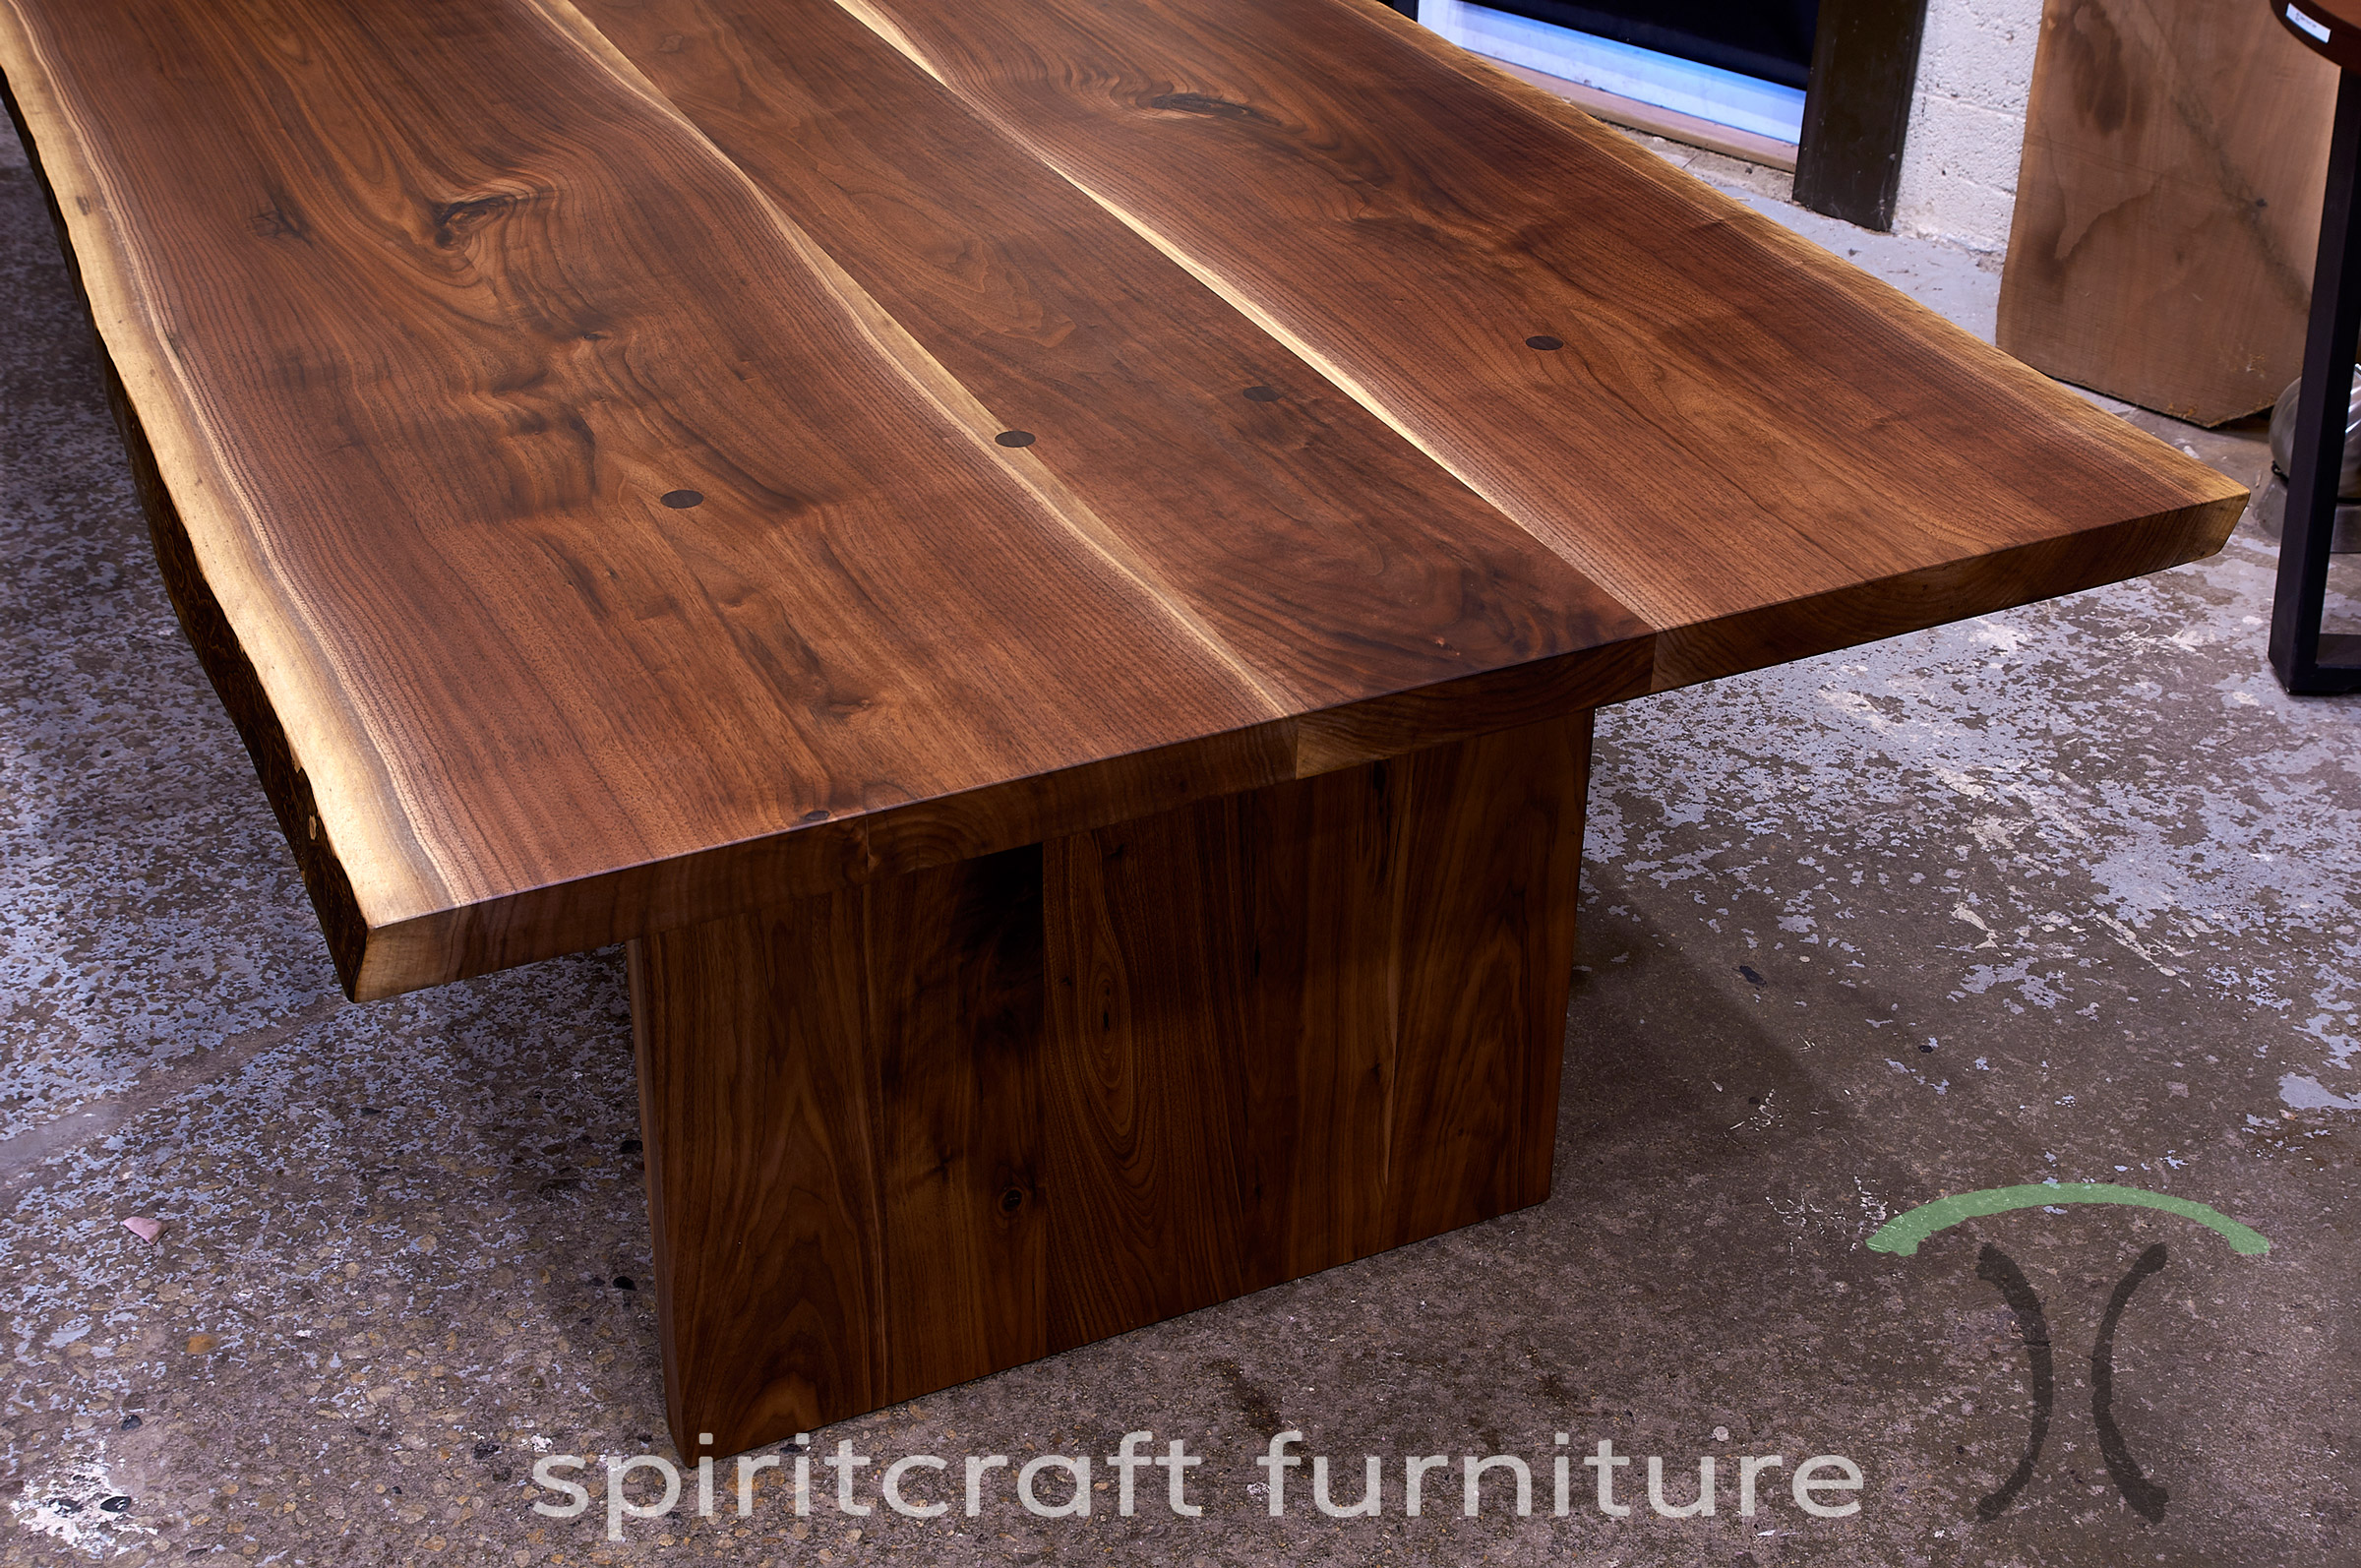 Live edge wood slab conference room tables and desk tops for Live edge wood slabs new york